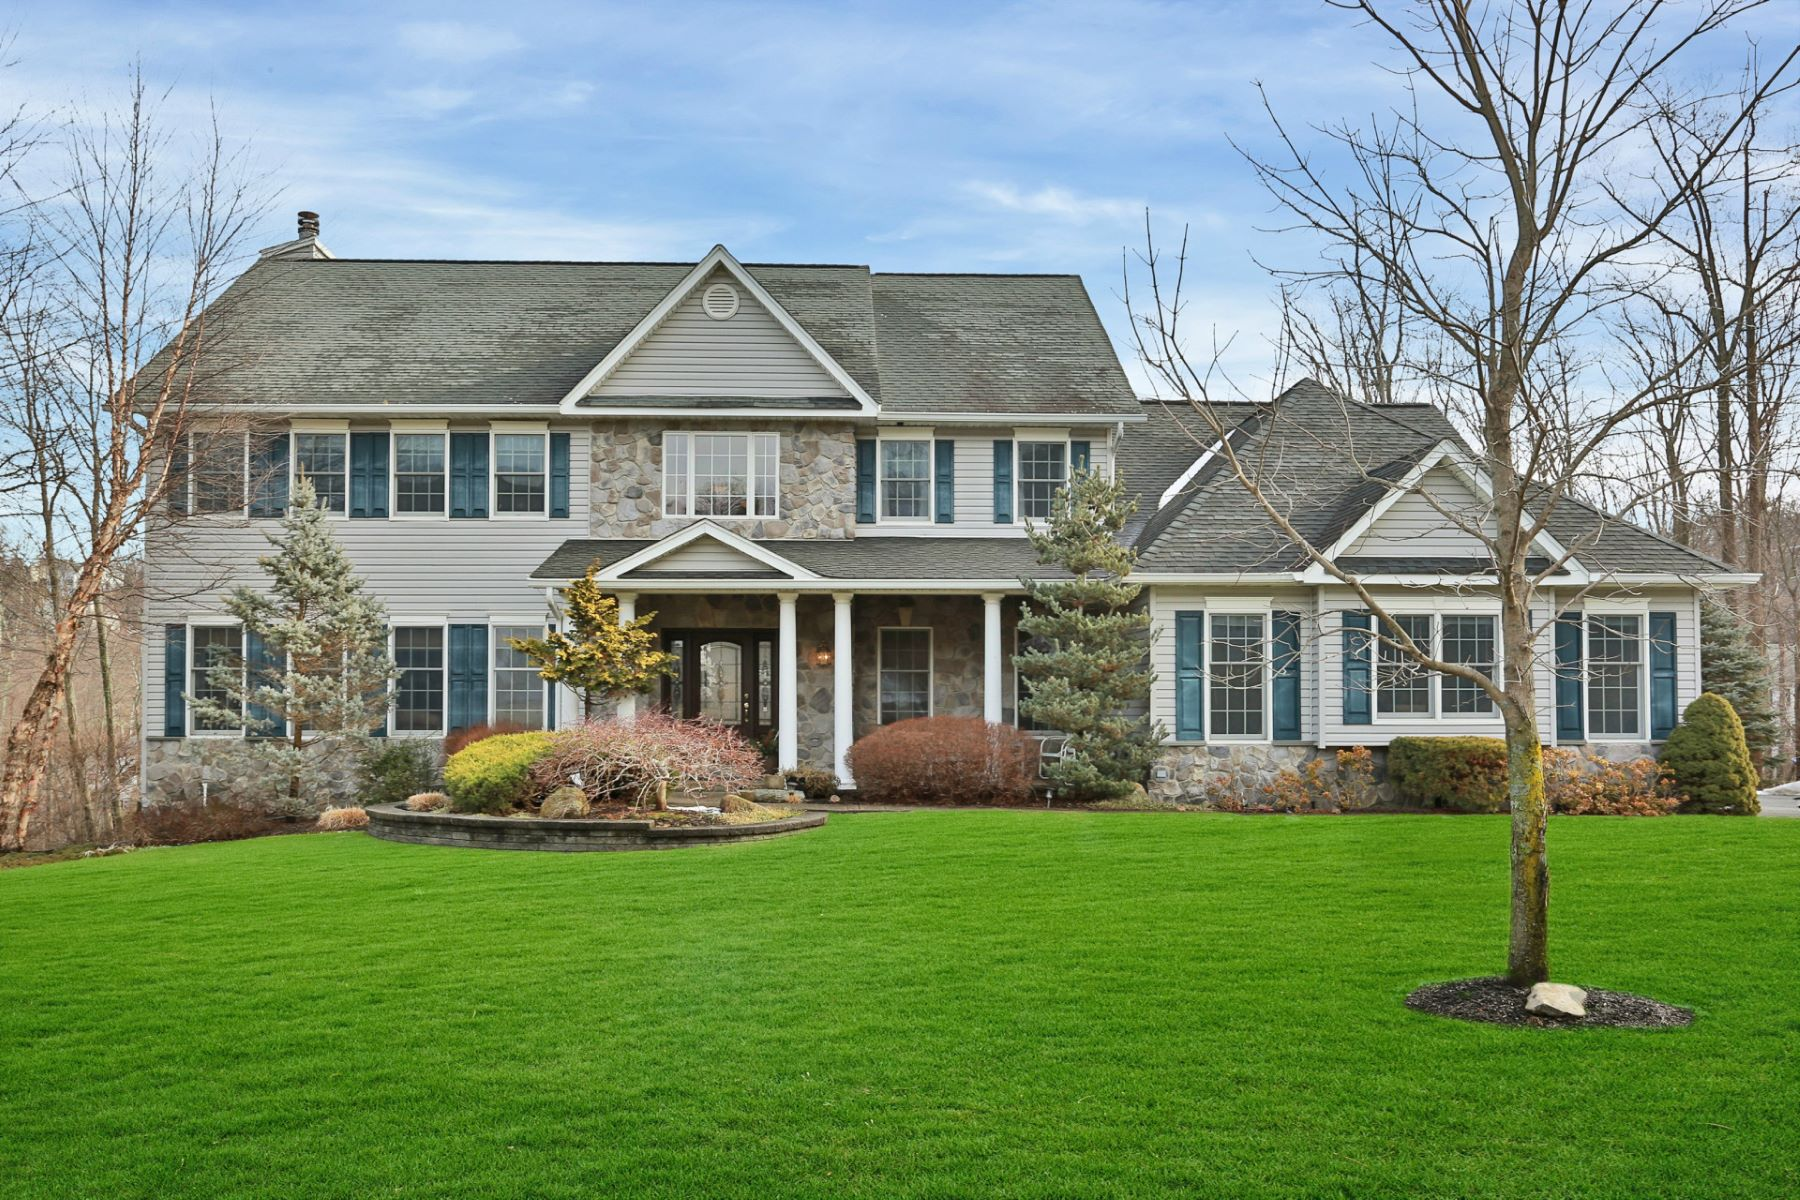 Single Family Home for Sale at Beautifully Maintained Colonial 12 Pierce Drive Stony Point, New York, 10980 United States